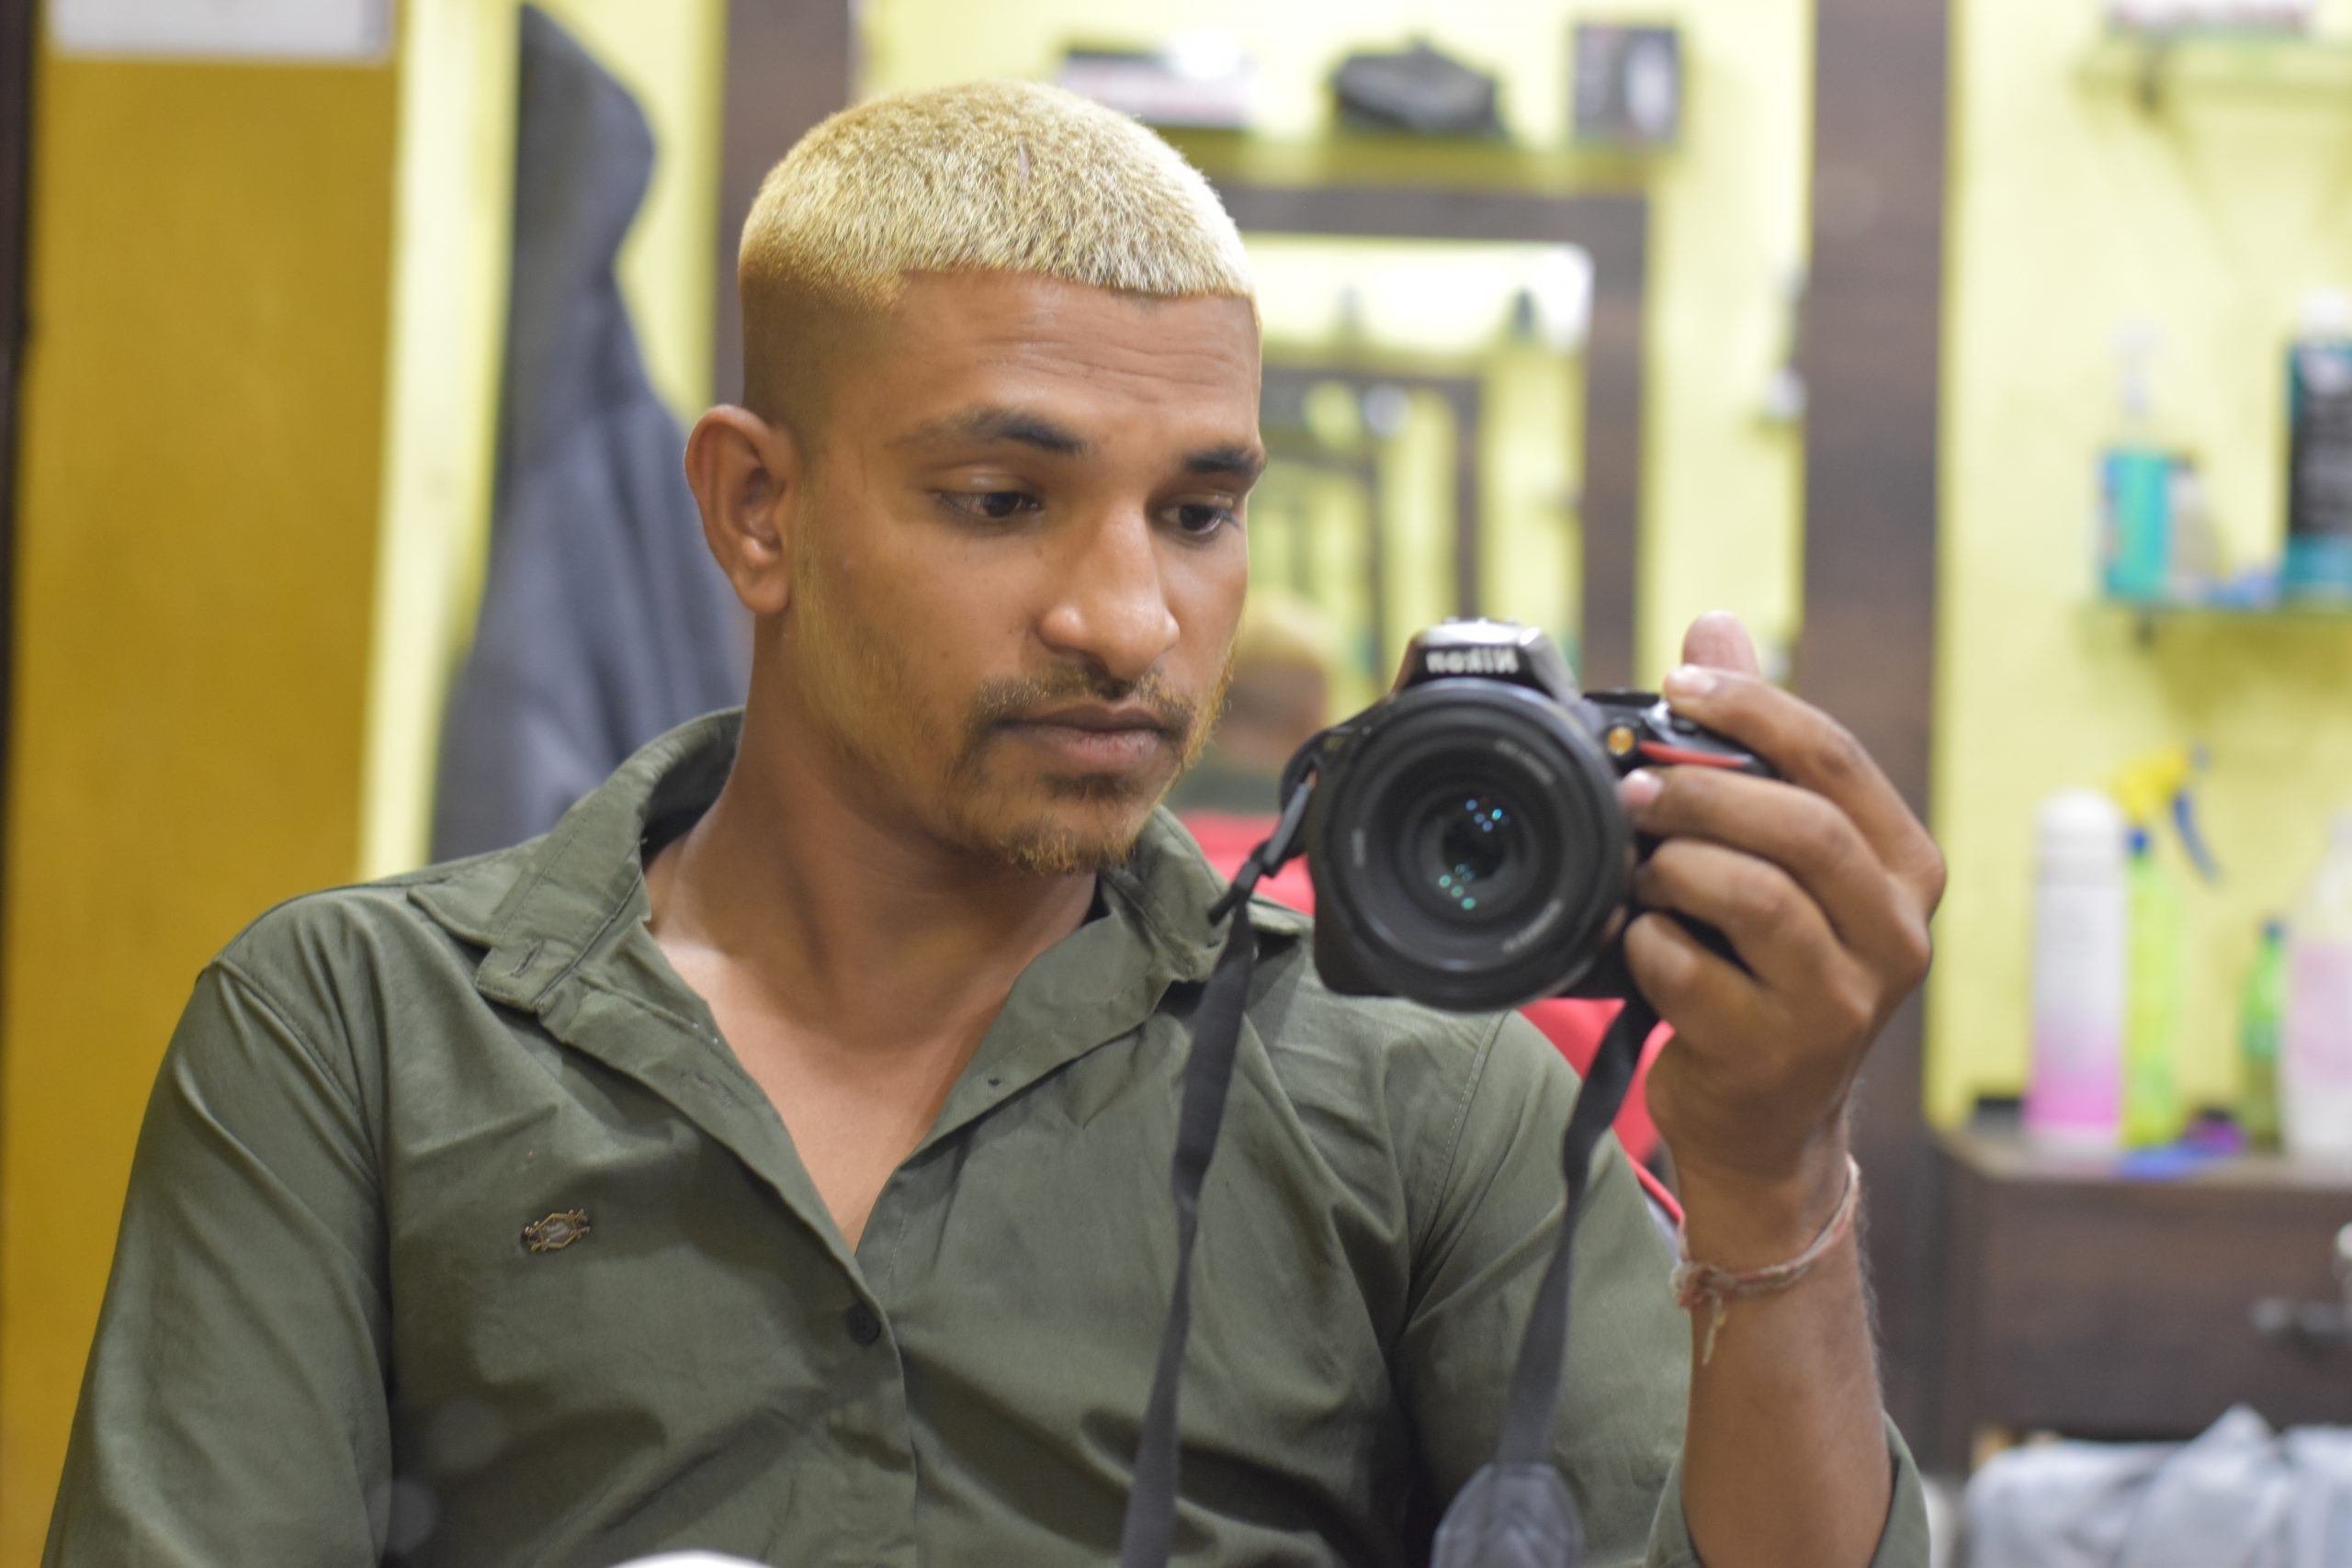 Boy clicking picture with camera